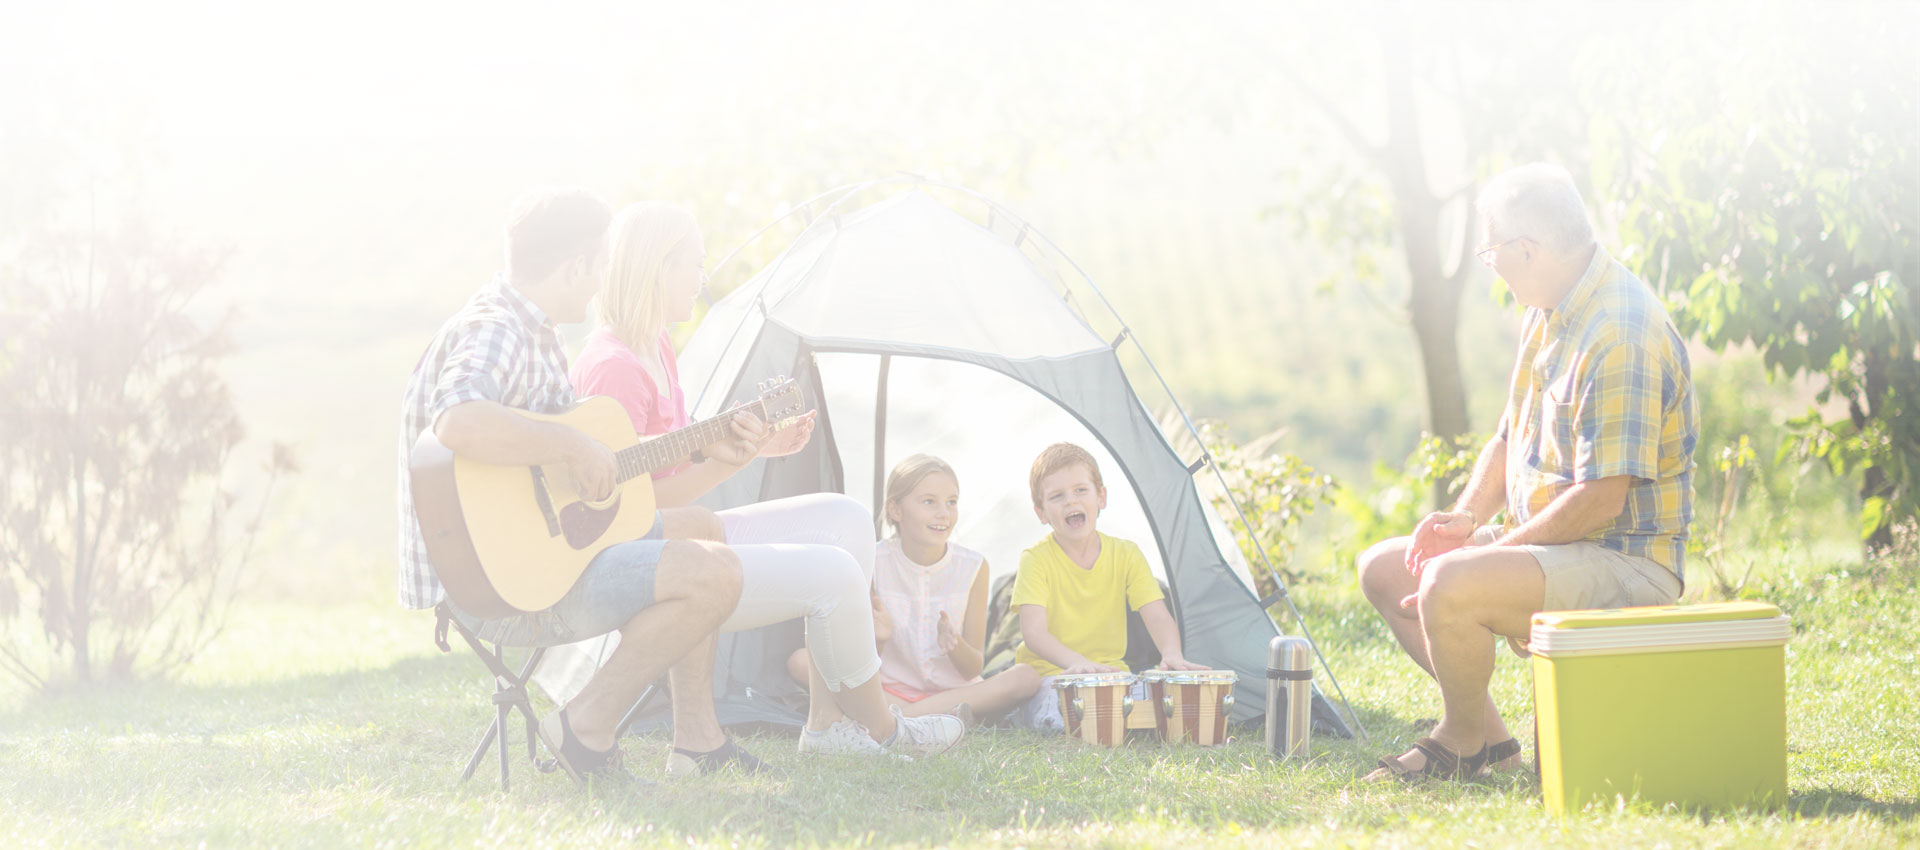 The trend of camping as a holiday accommodation